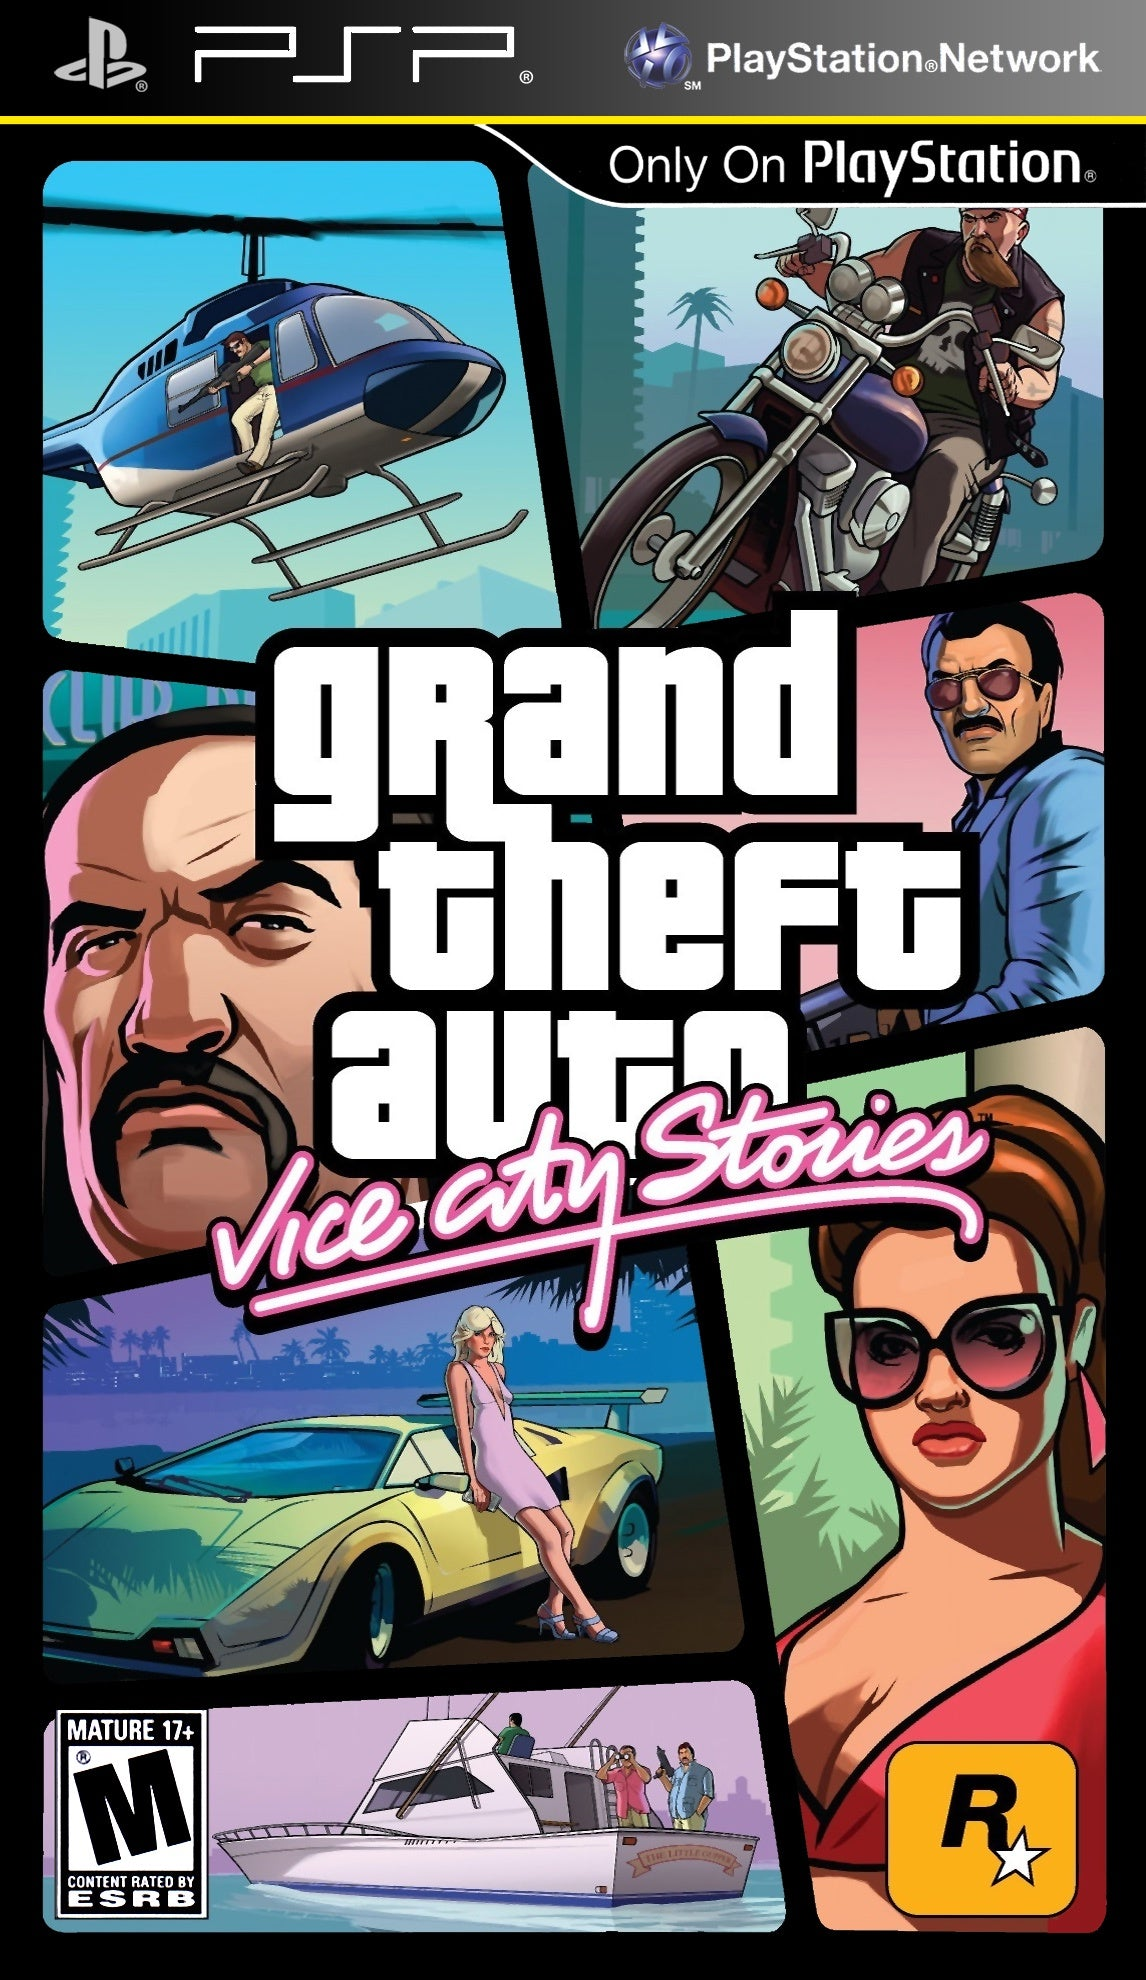 Grand Theft Auto Vice City Stories - PSP (Pre-owned)